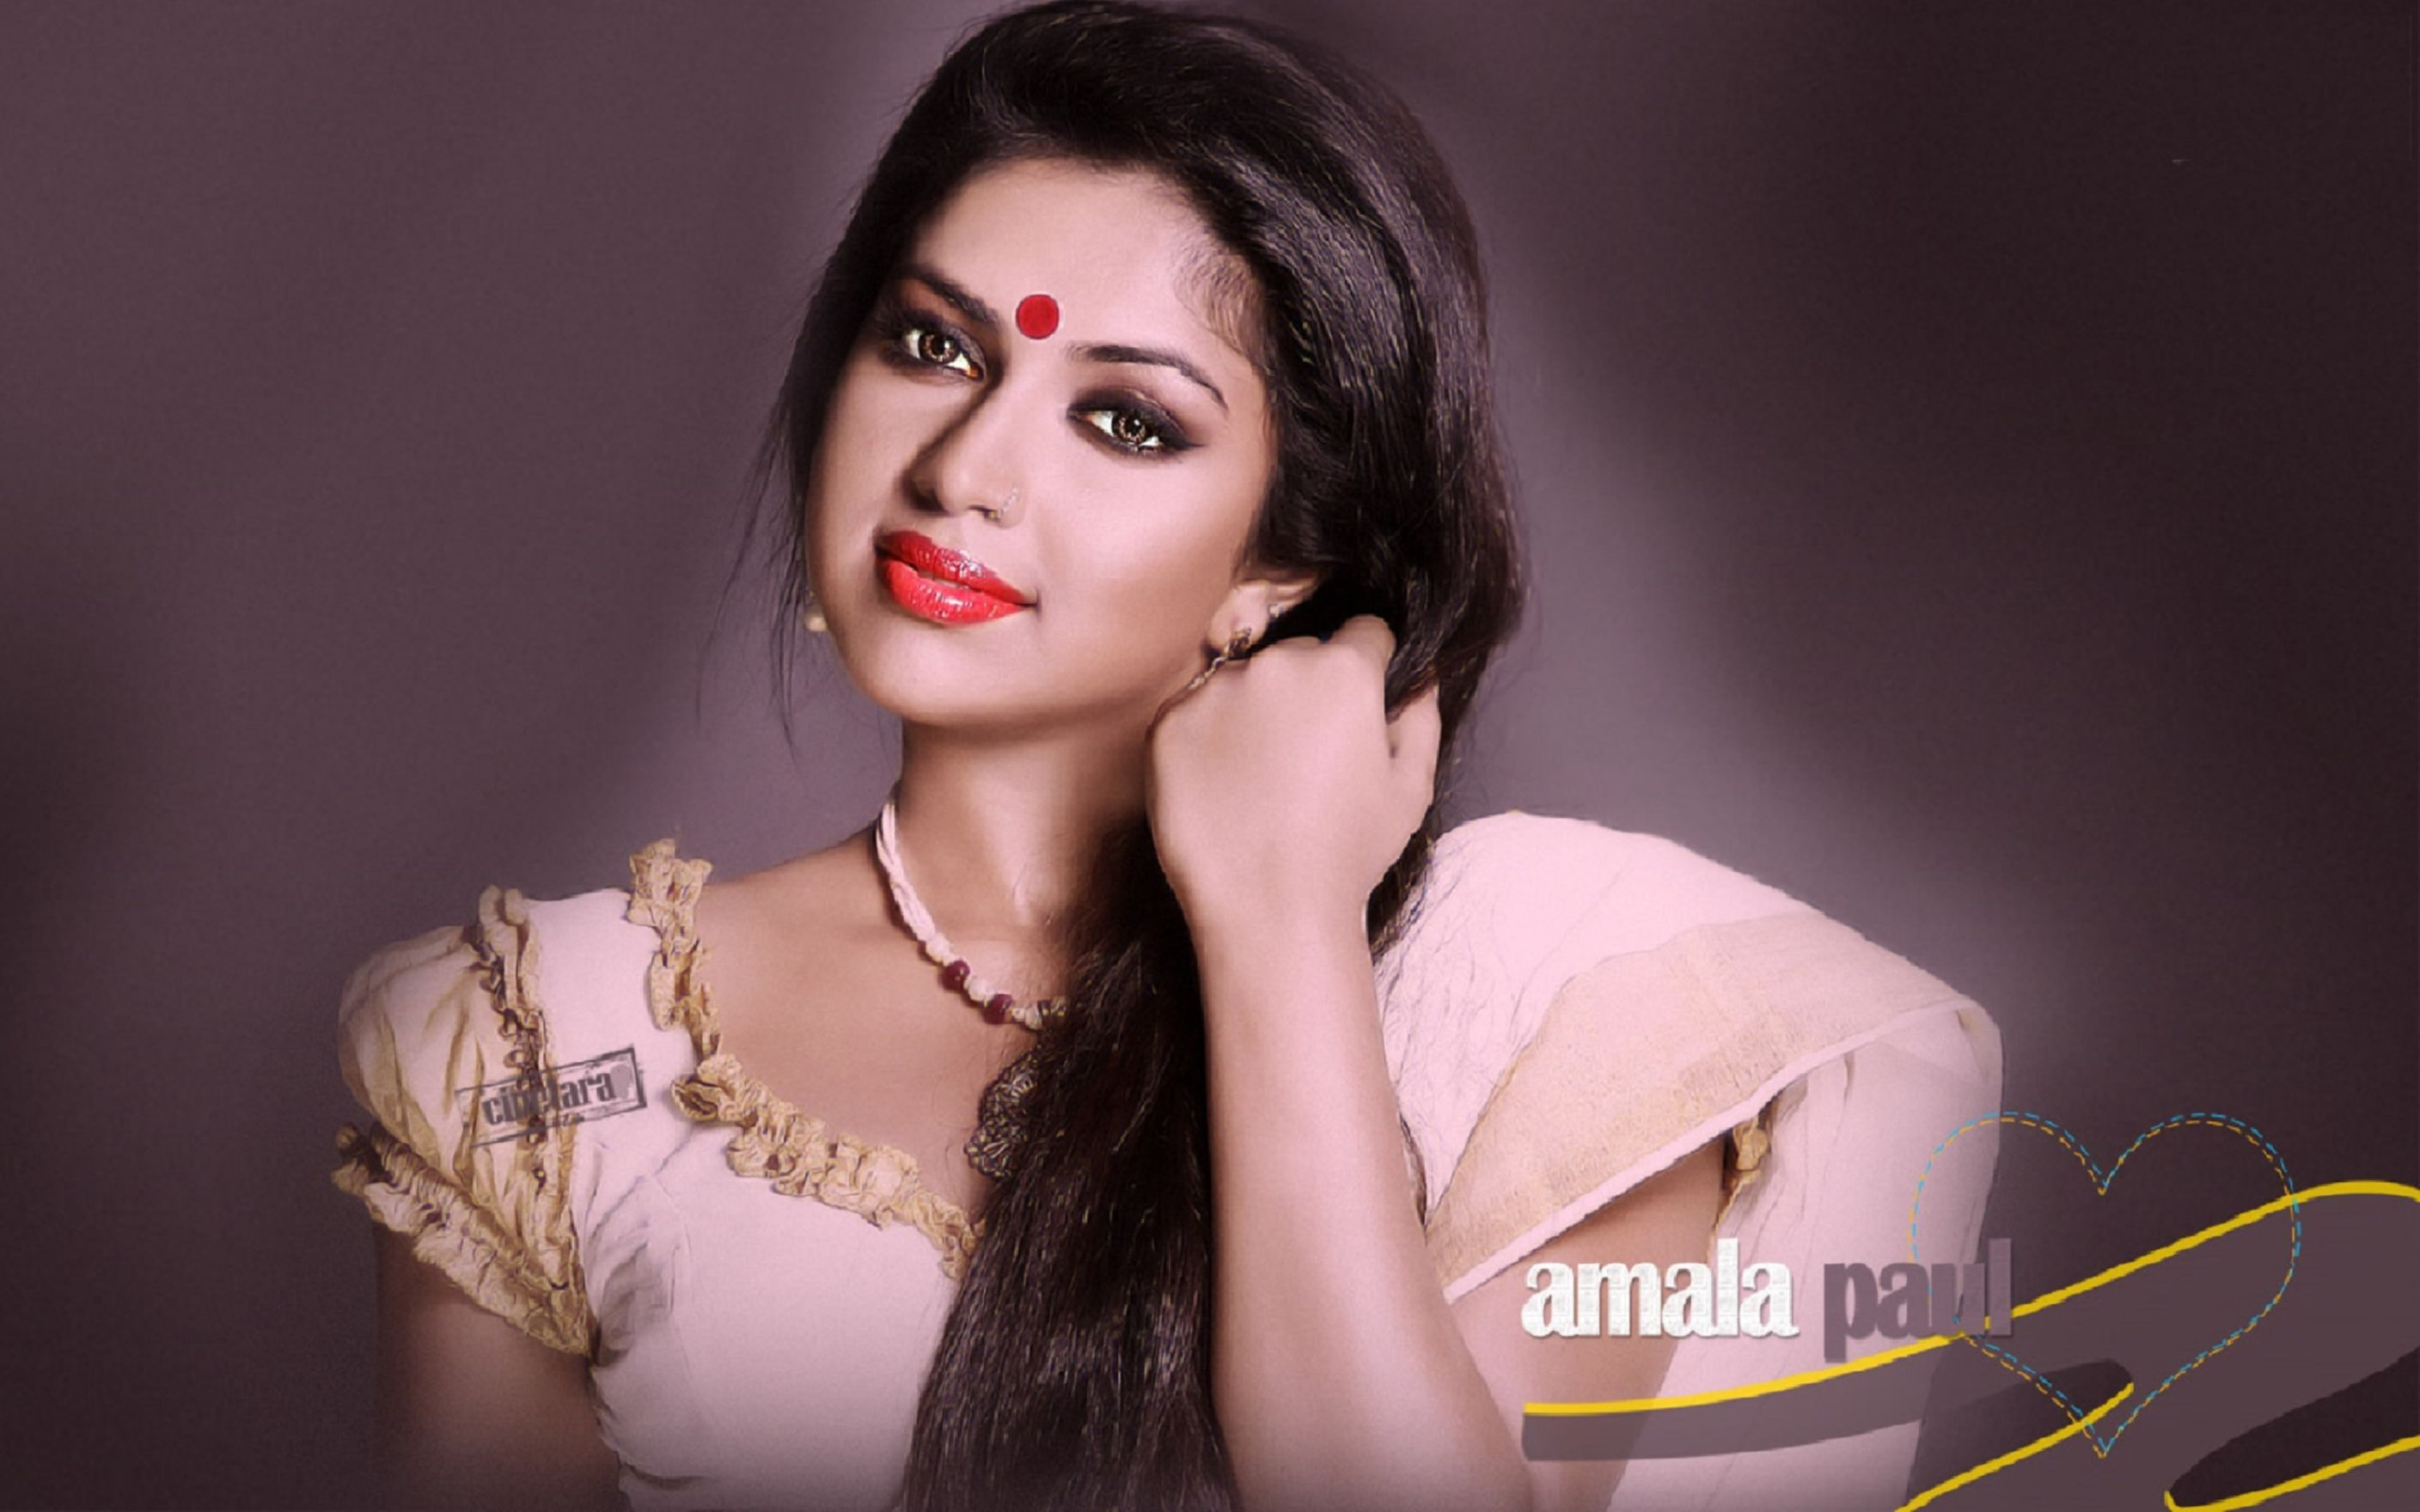 Download free HD Malayalam Actress Amala Paul Wallpaper, image